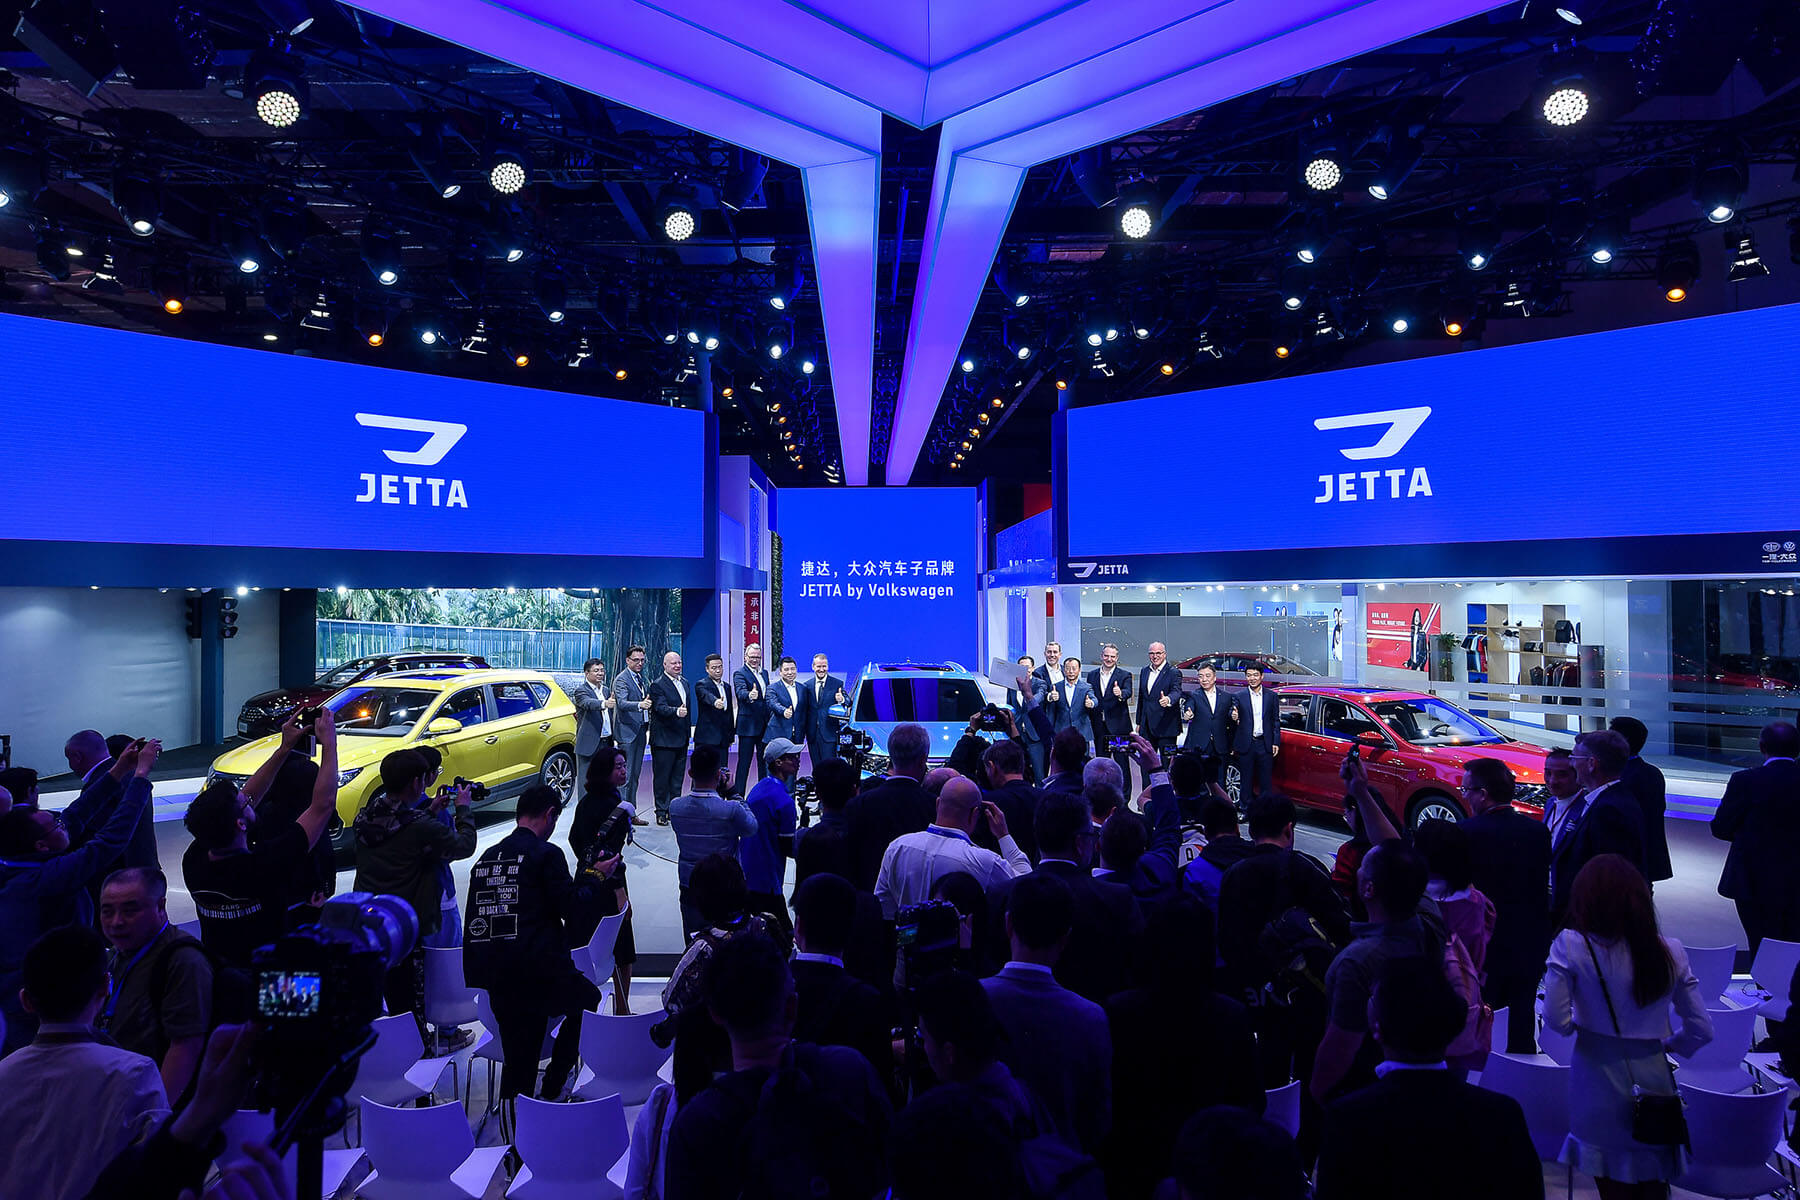 Jetta Brand Shanghai Auto Show Press Conference & Communication